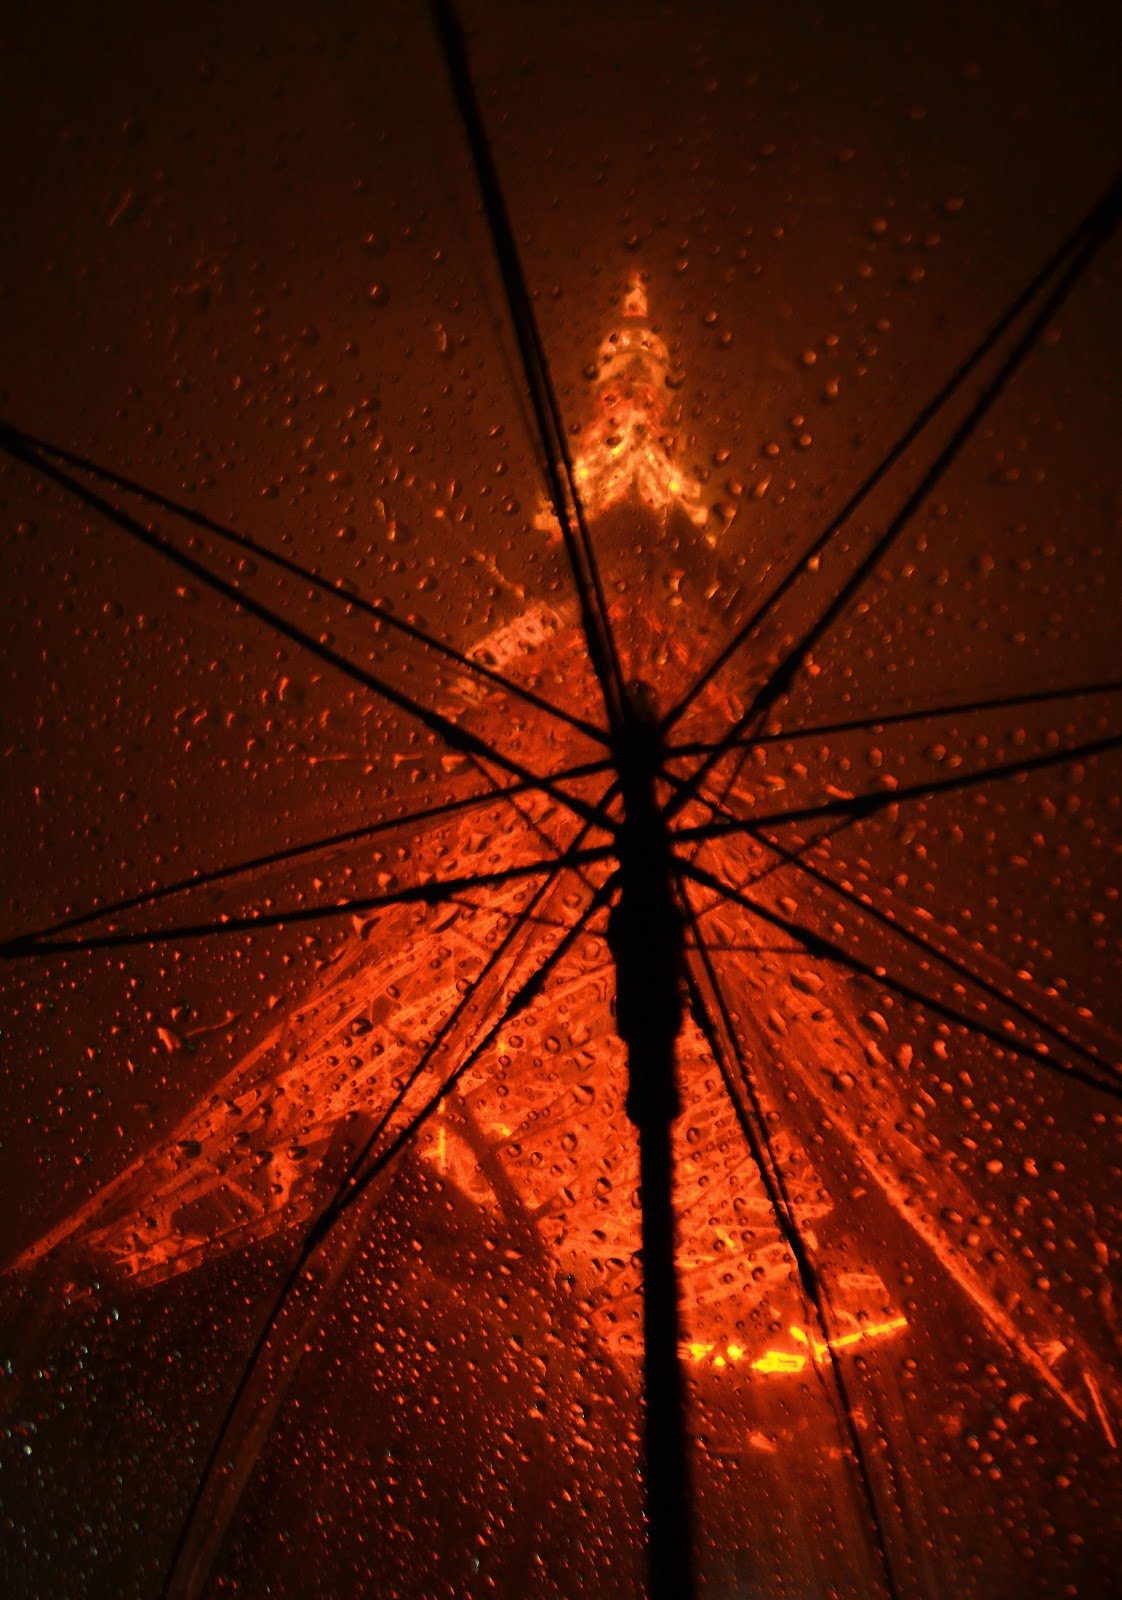 Tokyo tower in the rain seen from under a translucent umbrella by Brenda Alvarez